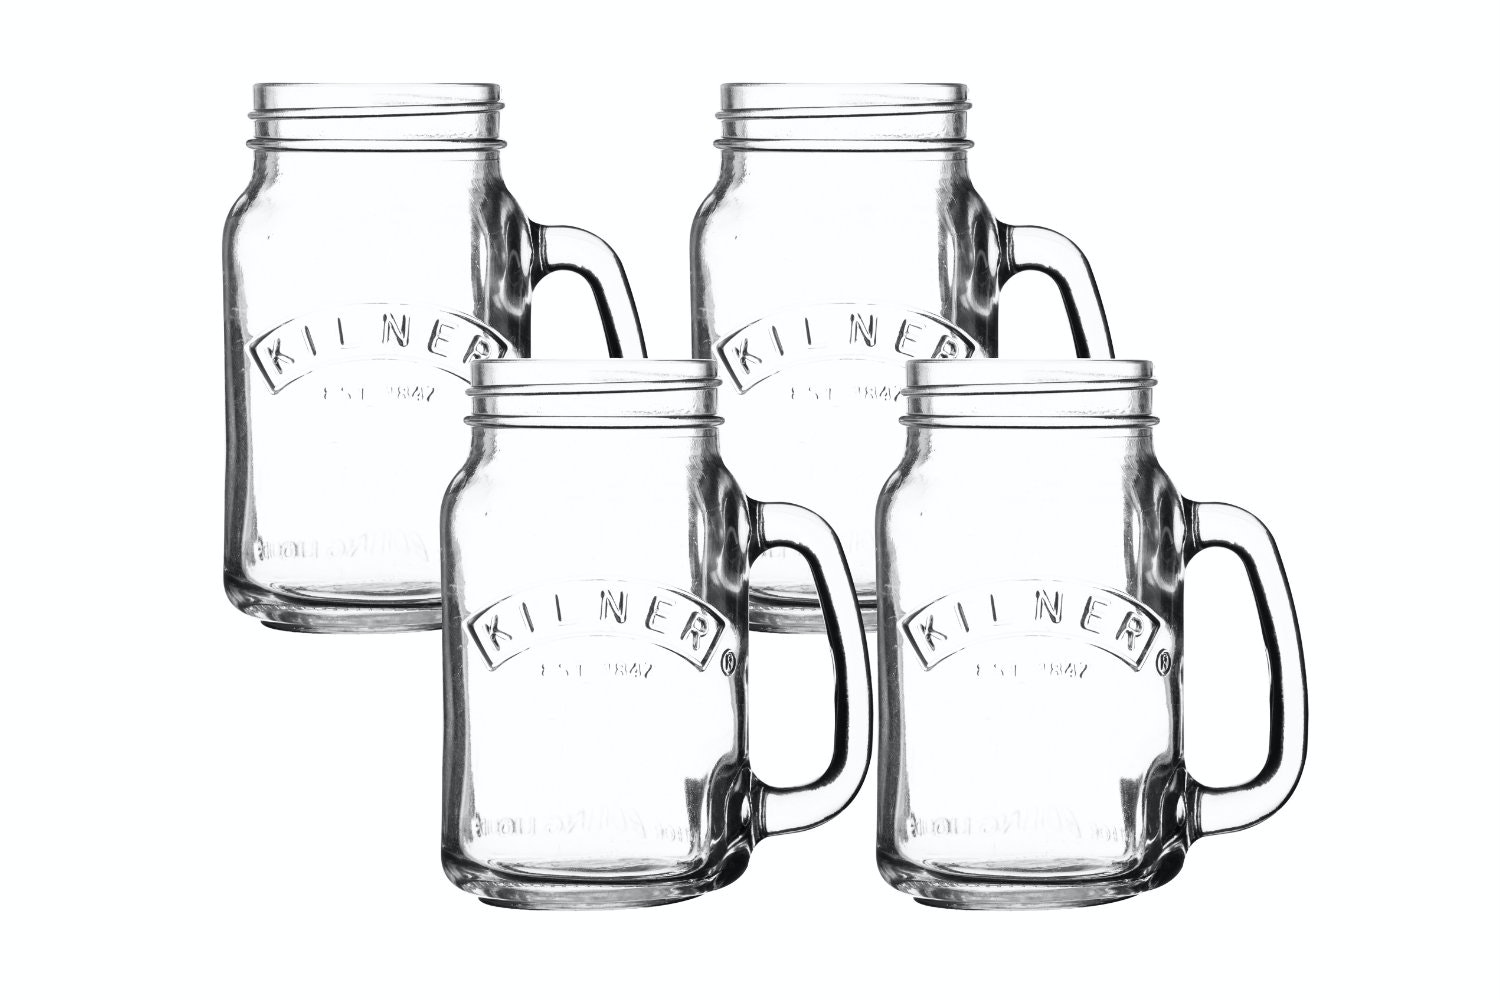 kilner set of 4 handled jars clear